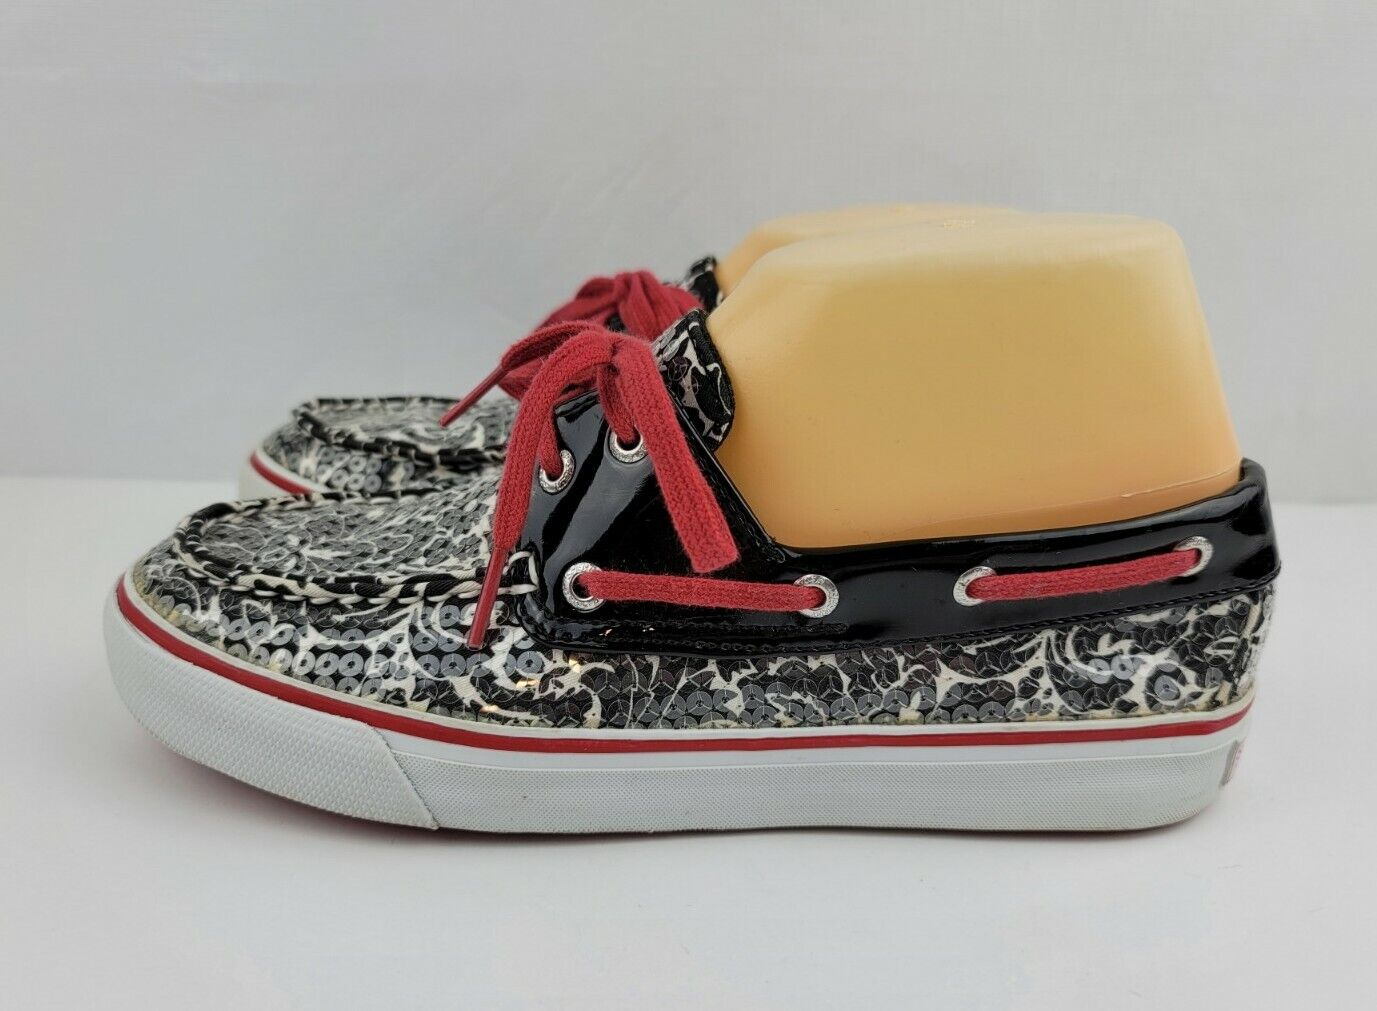 Sperry Top Sider Womens 6.5 M Black White Floral Sequin Boat Shoes Loafers